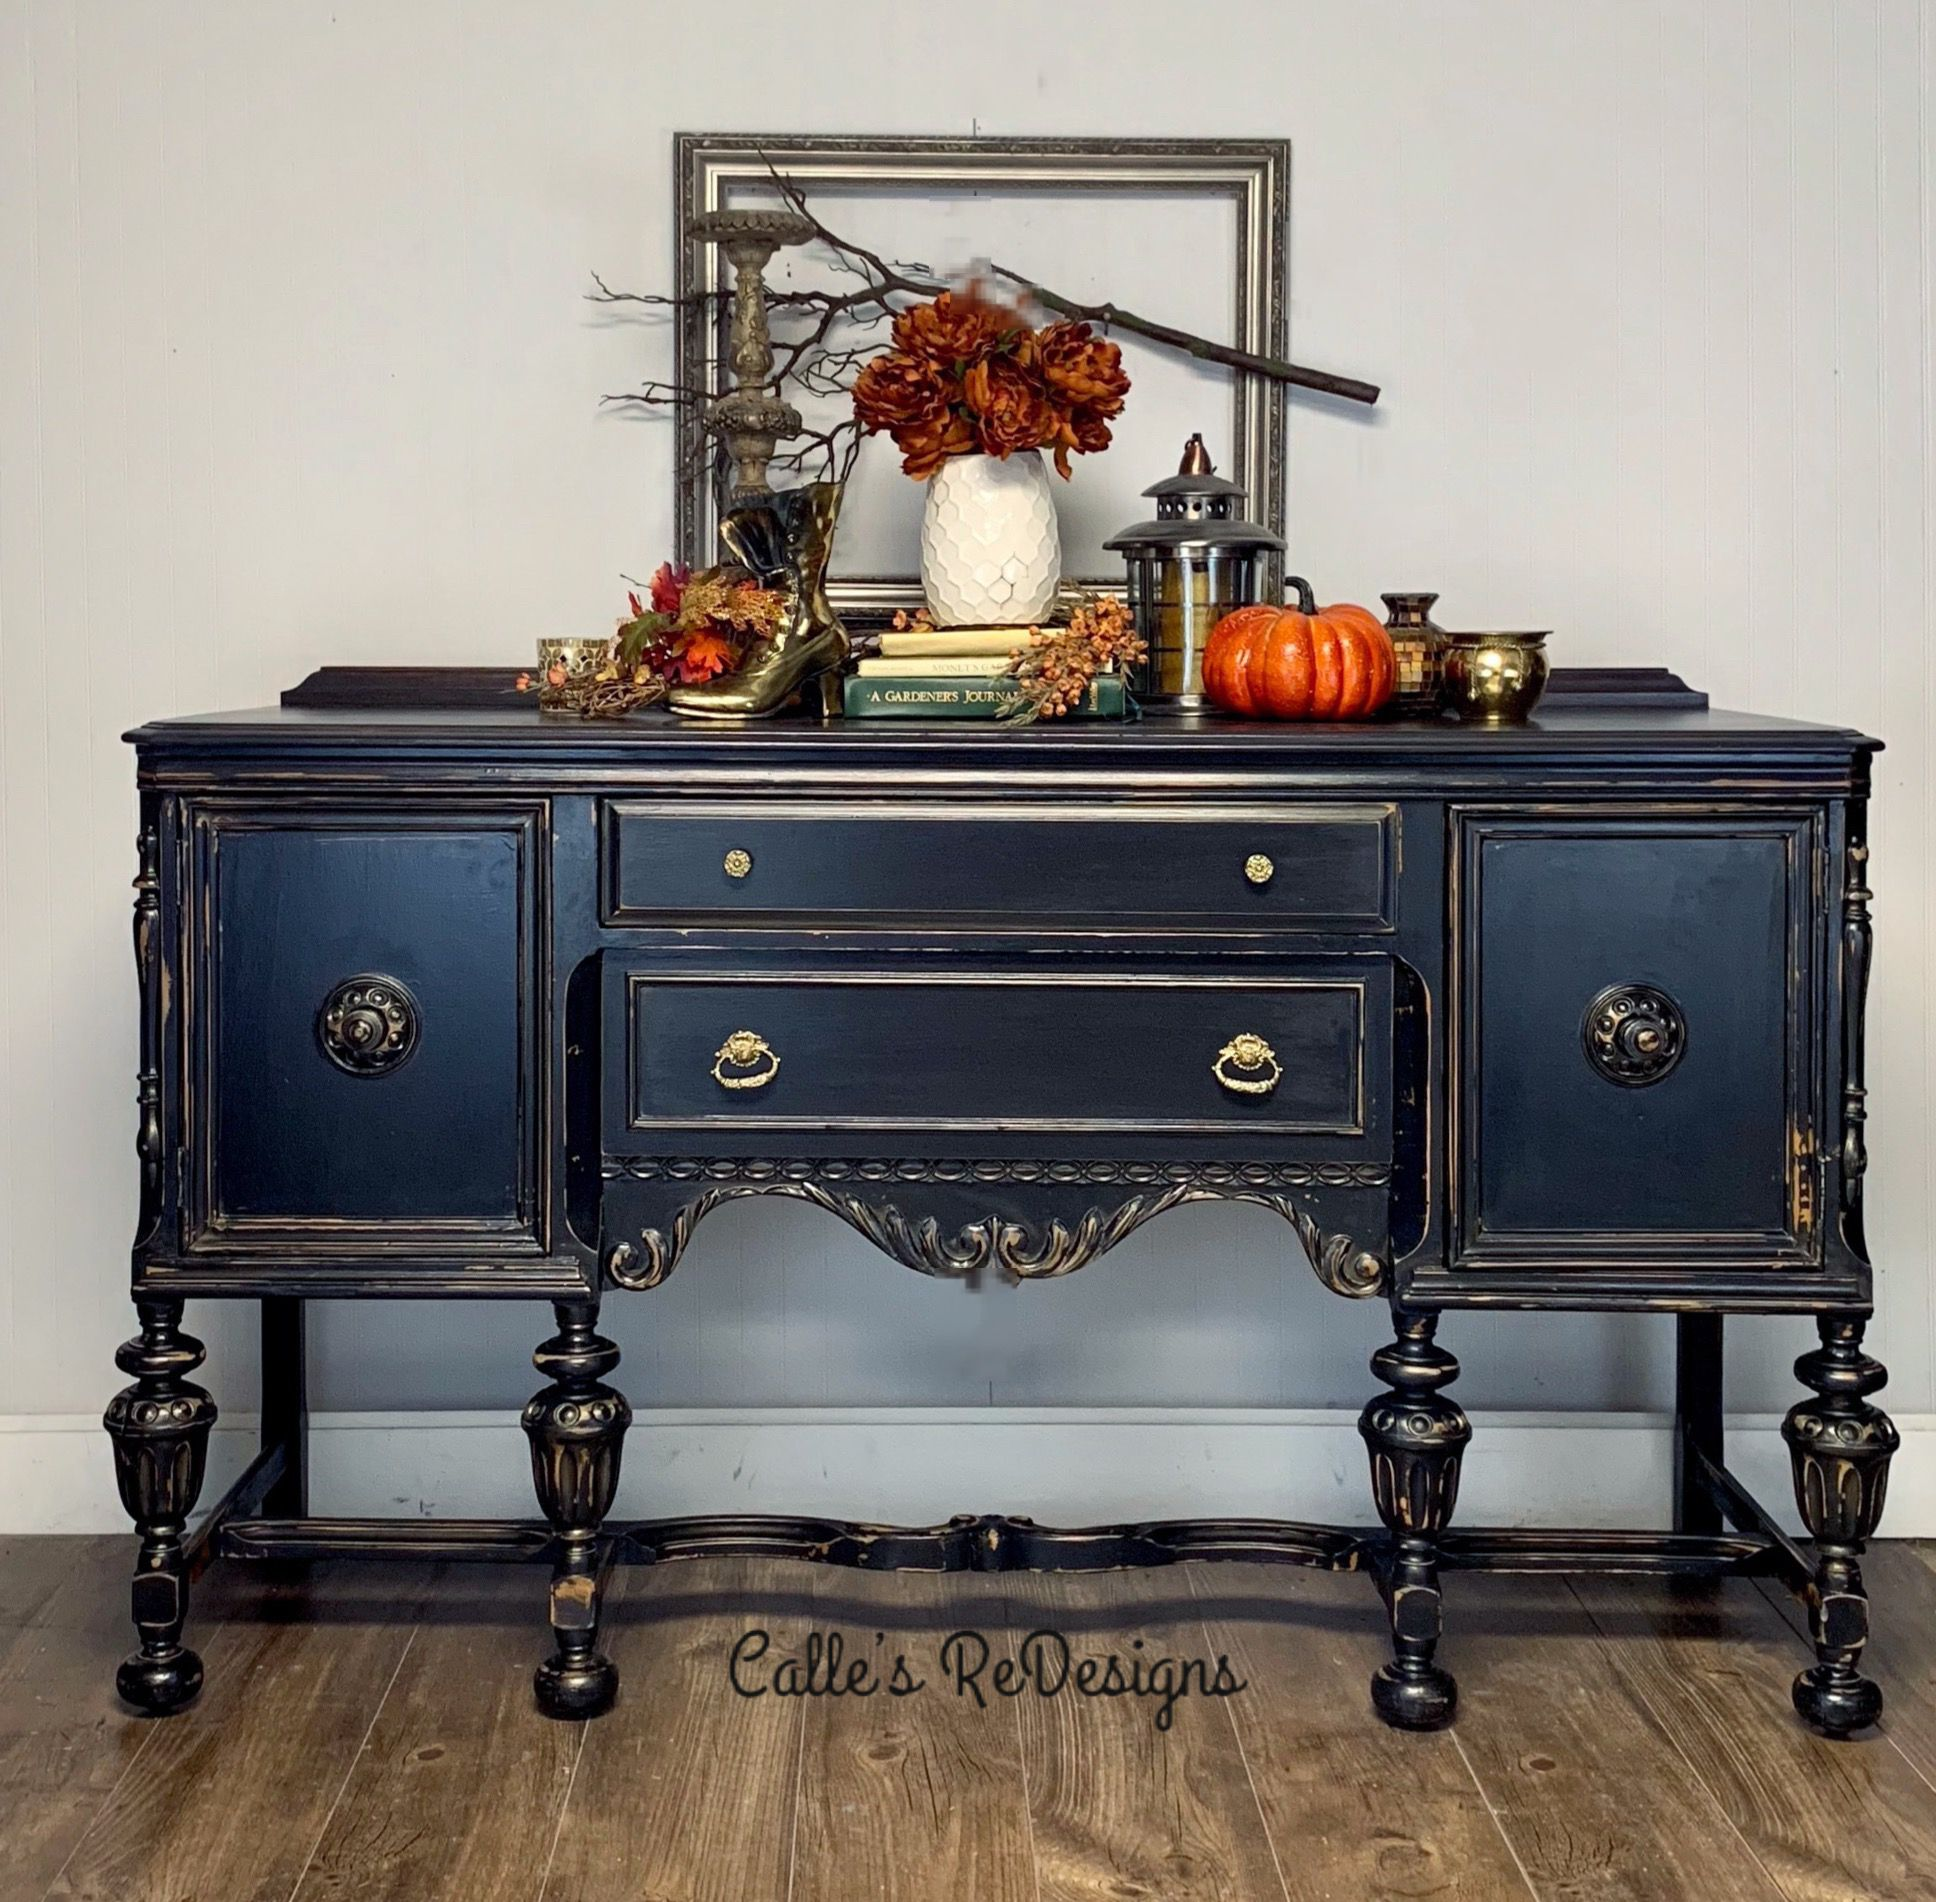 Painted in the perfect Black with Wise Owl Paints by Calle